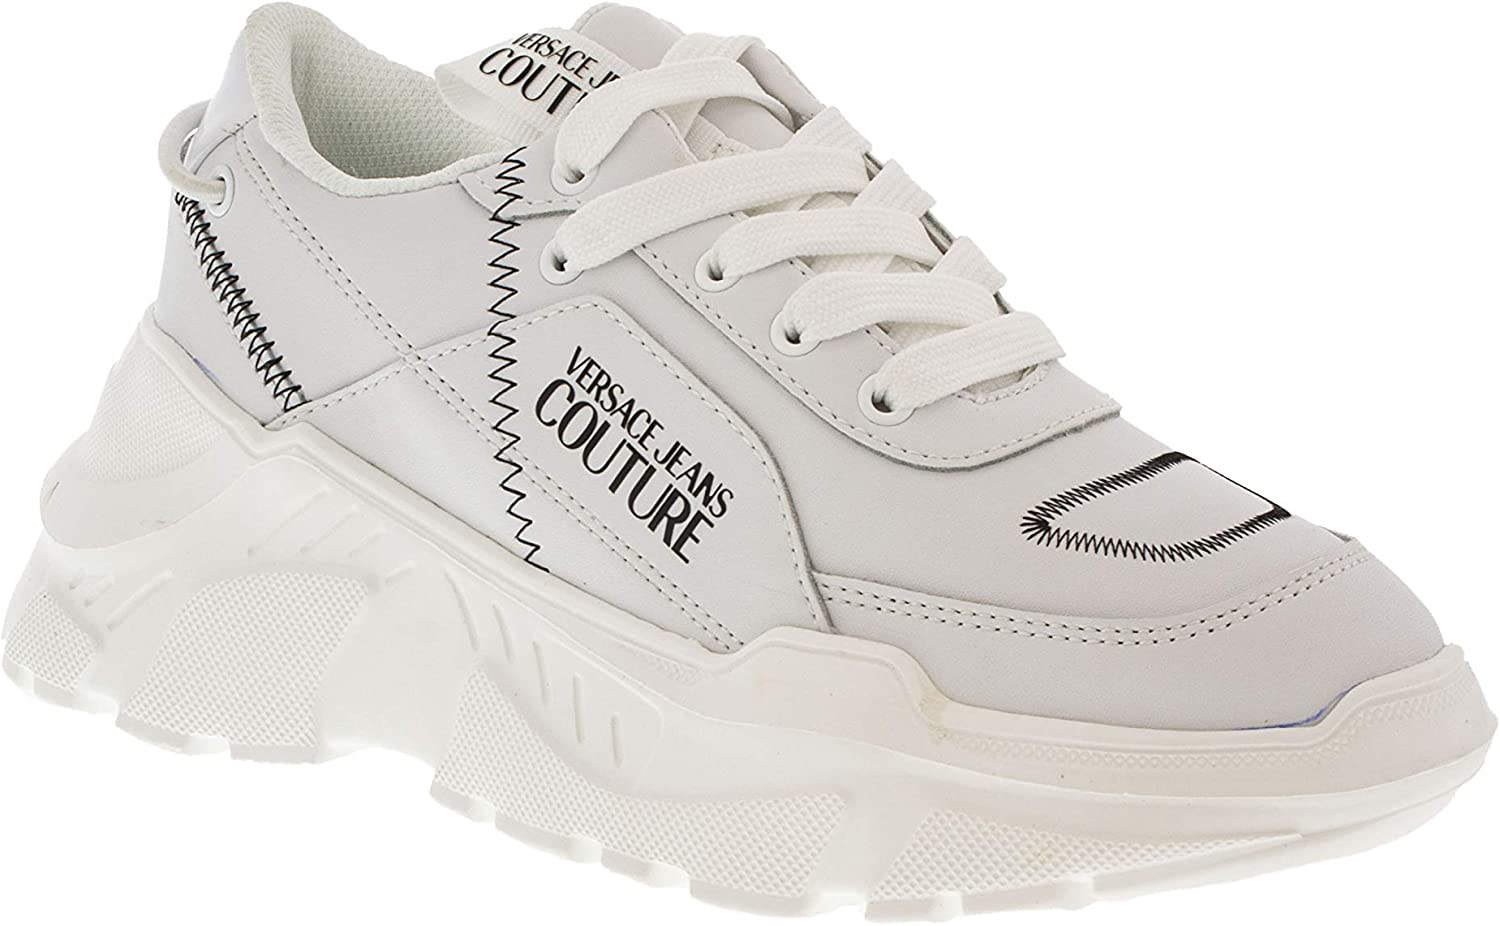 : Versace Jeans Couture White Speed Fashion Chunky